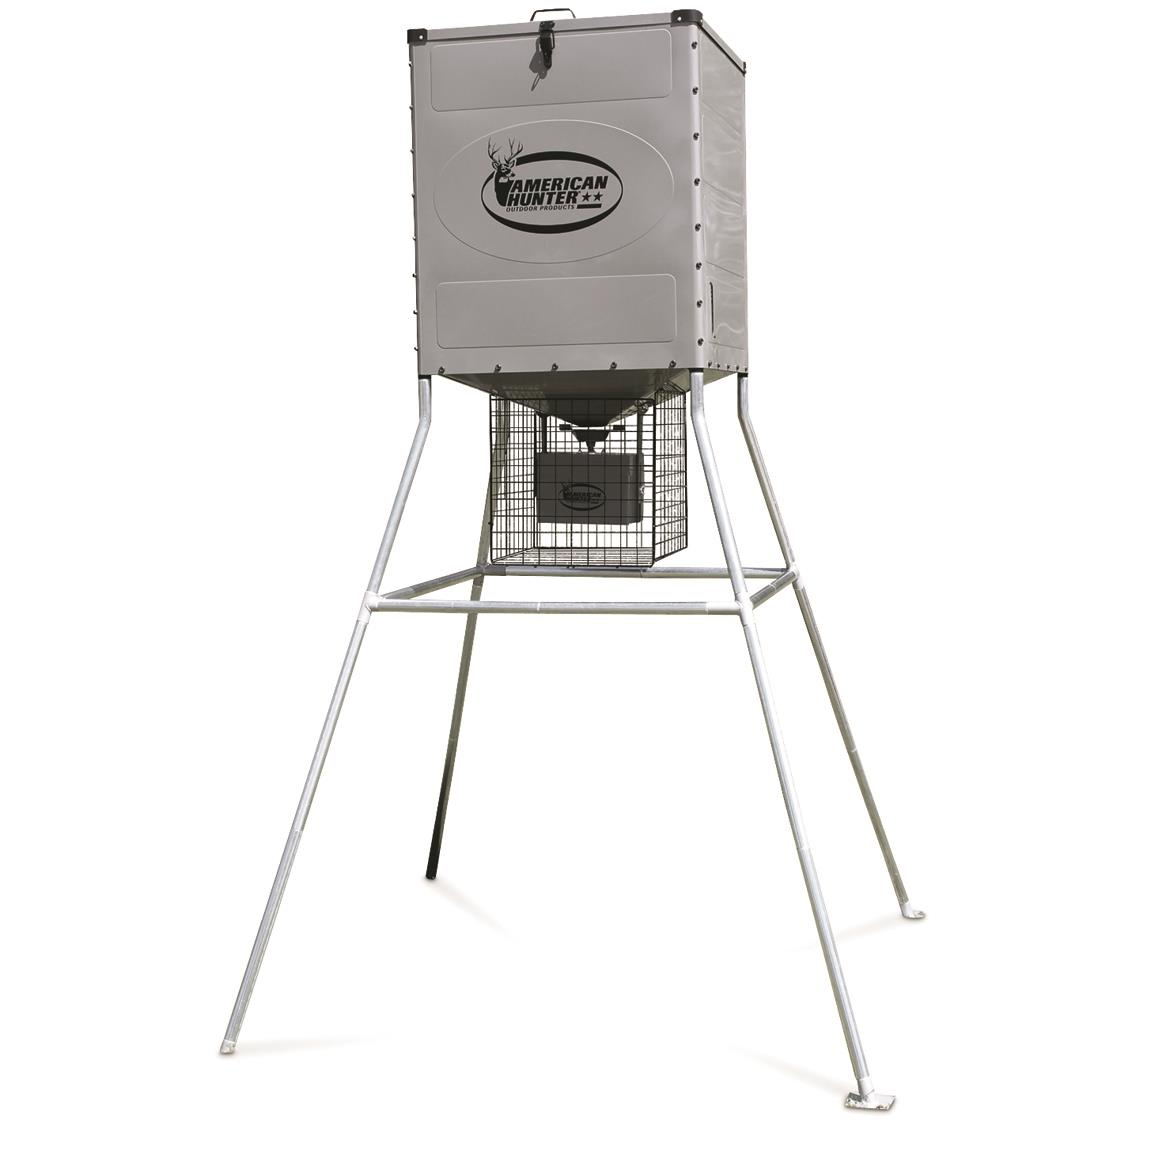 American Hunter KD Feeder With Digital Timer, 600 lb. Capacity